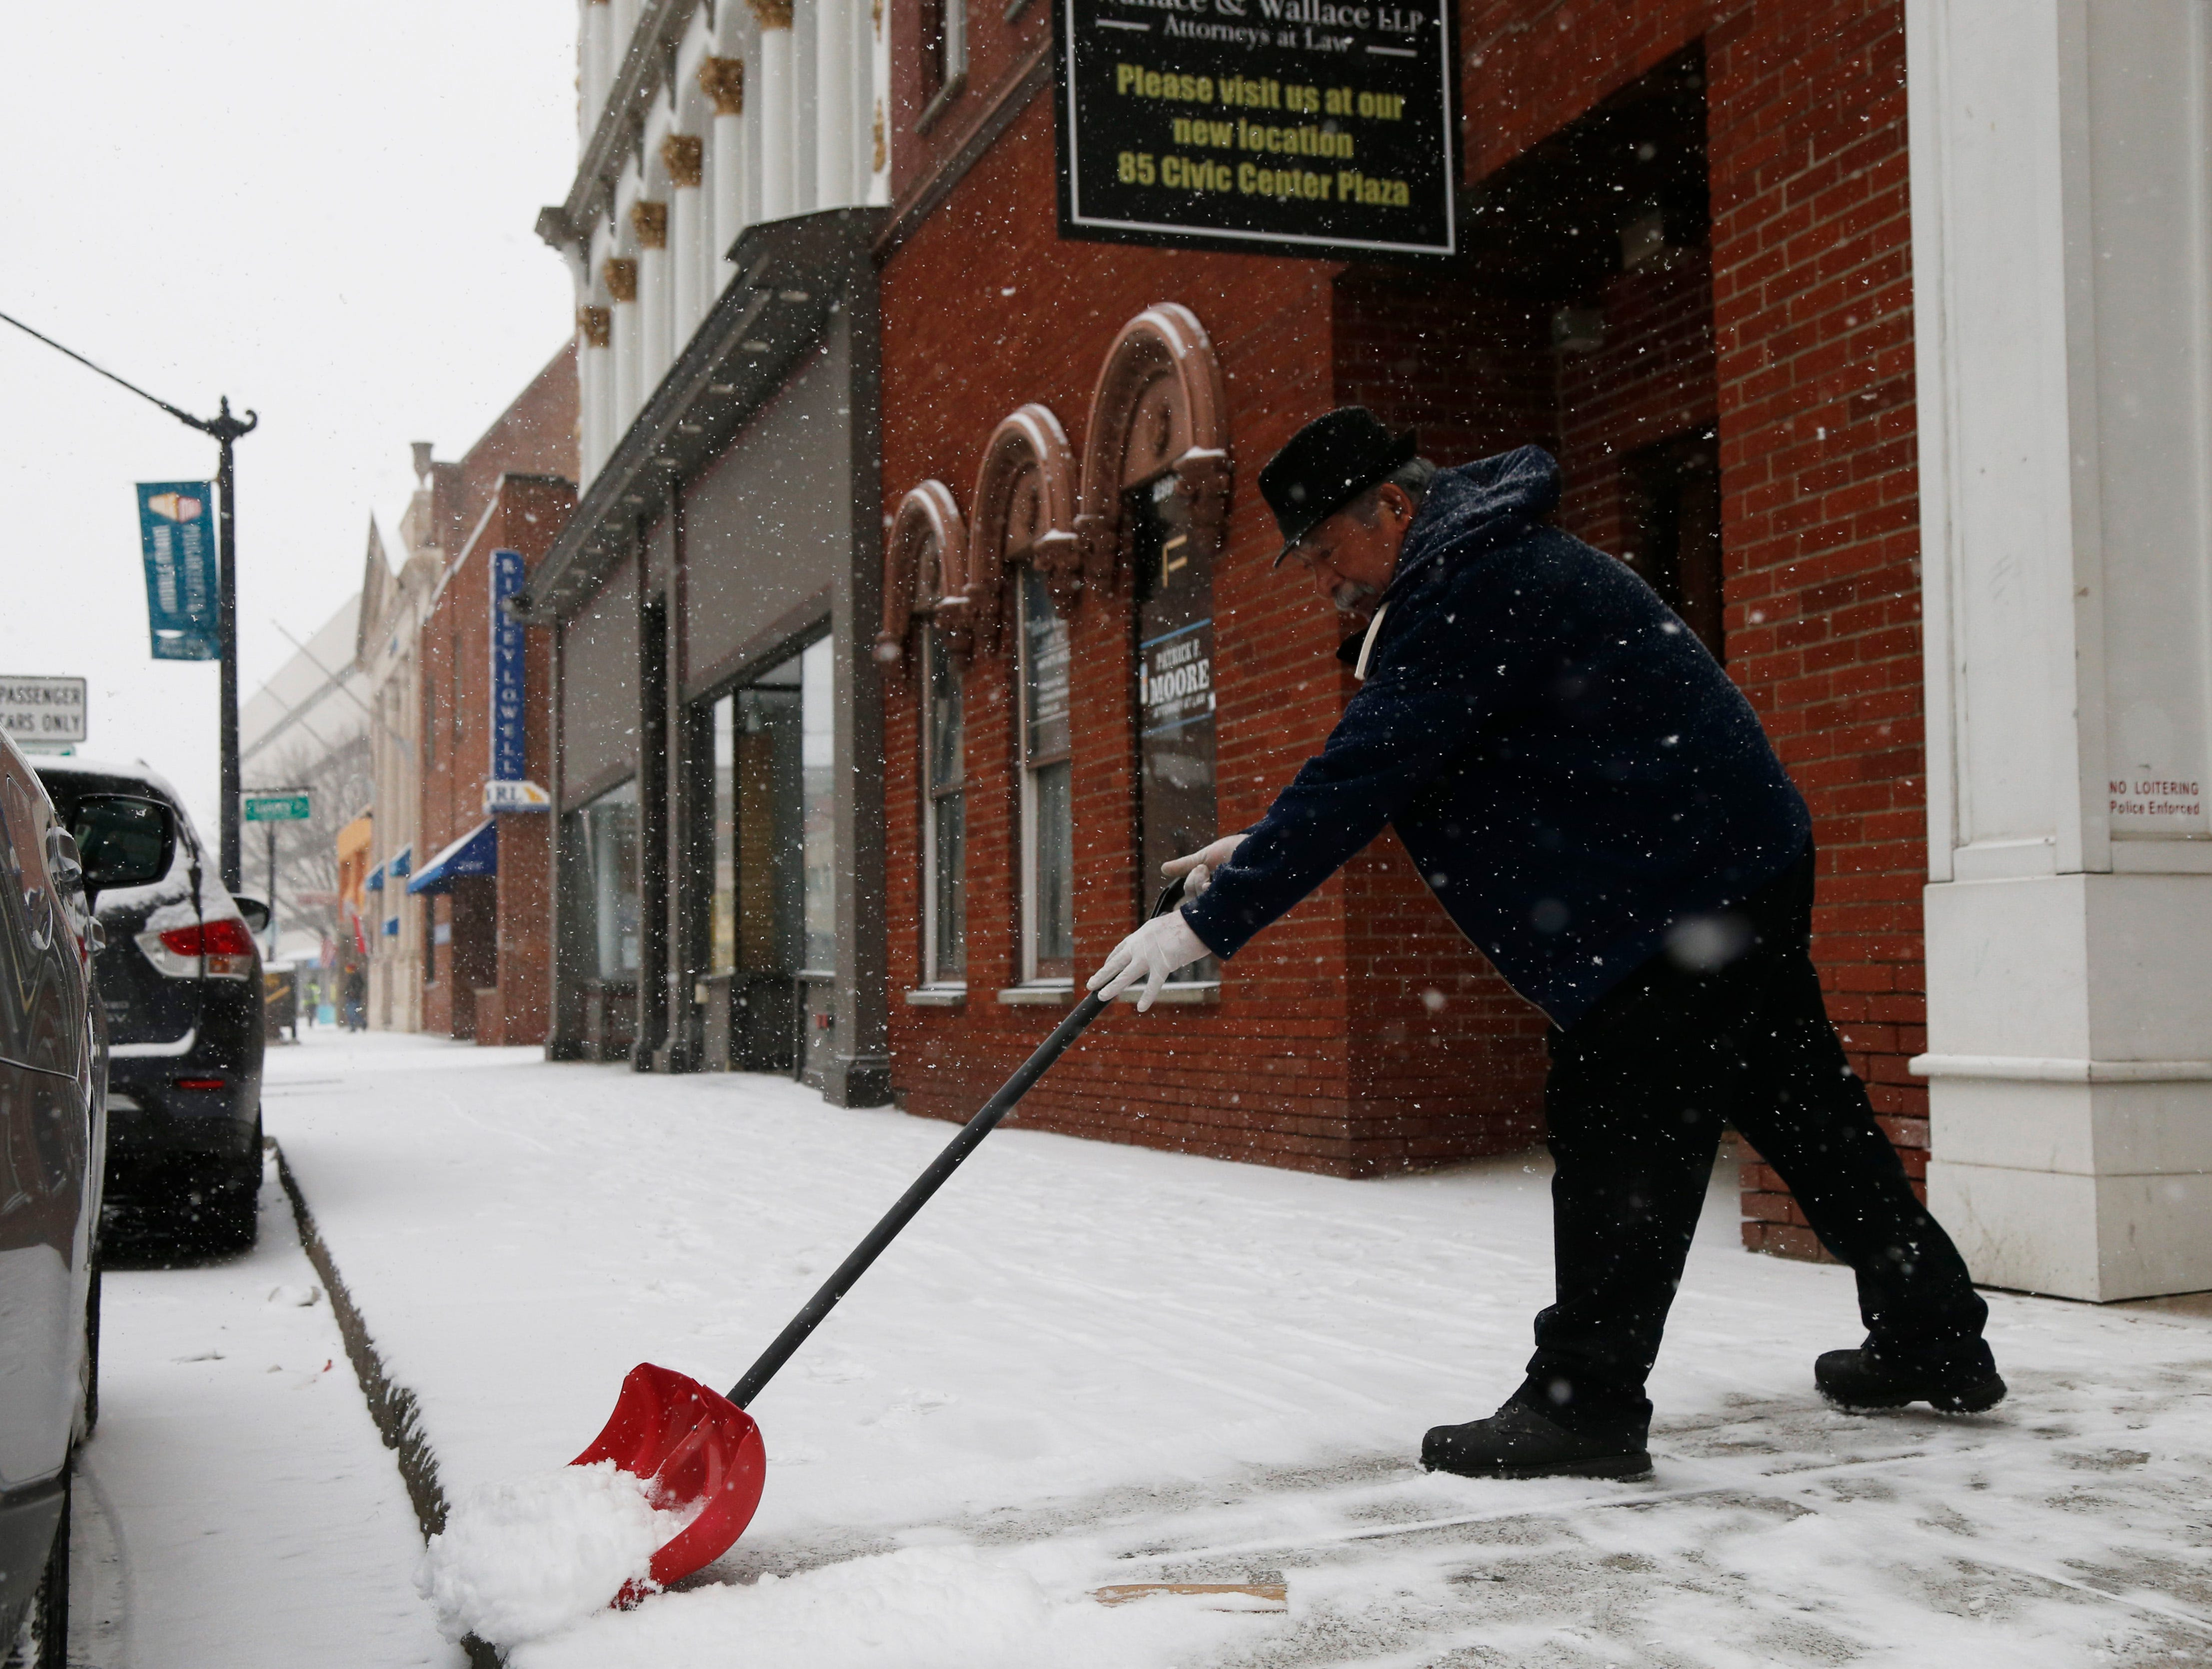 Eddie Jimenez clears snow from the sidewalk outside The Artist's Pallate in the City of Poughkeepsie on February 12, 2019.